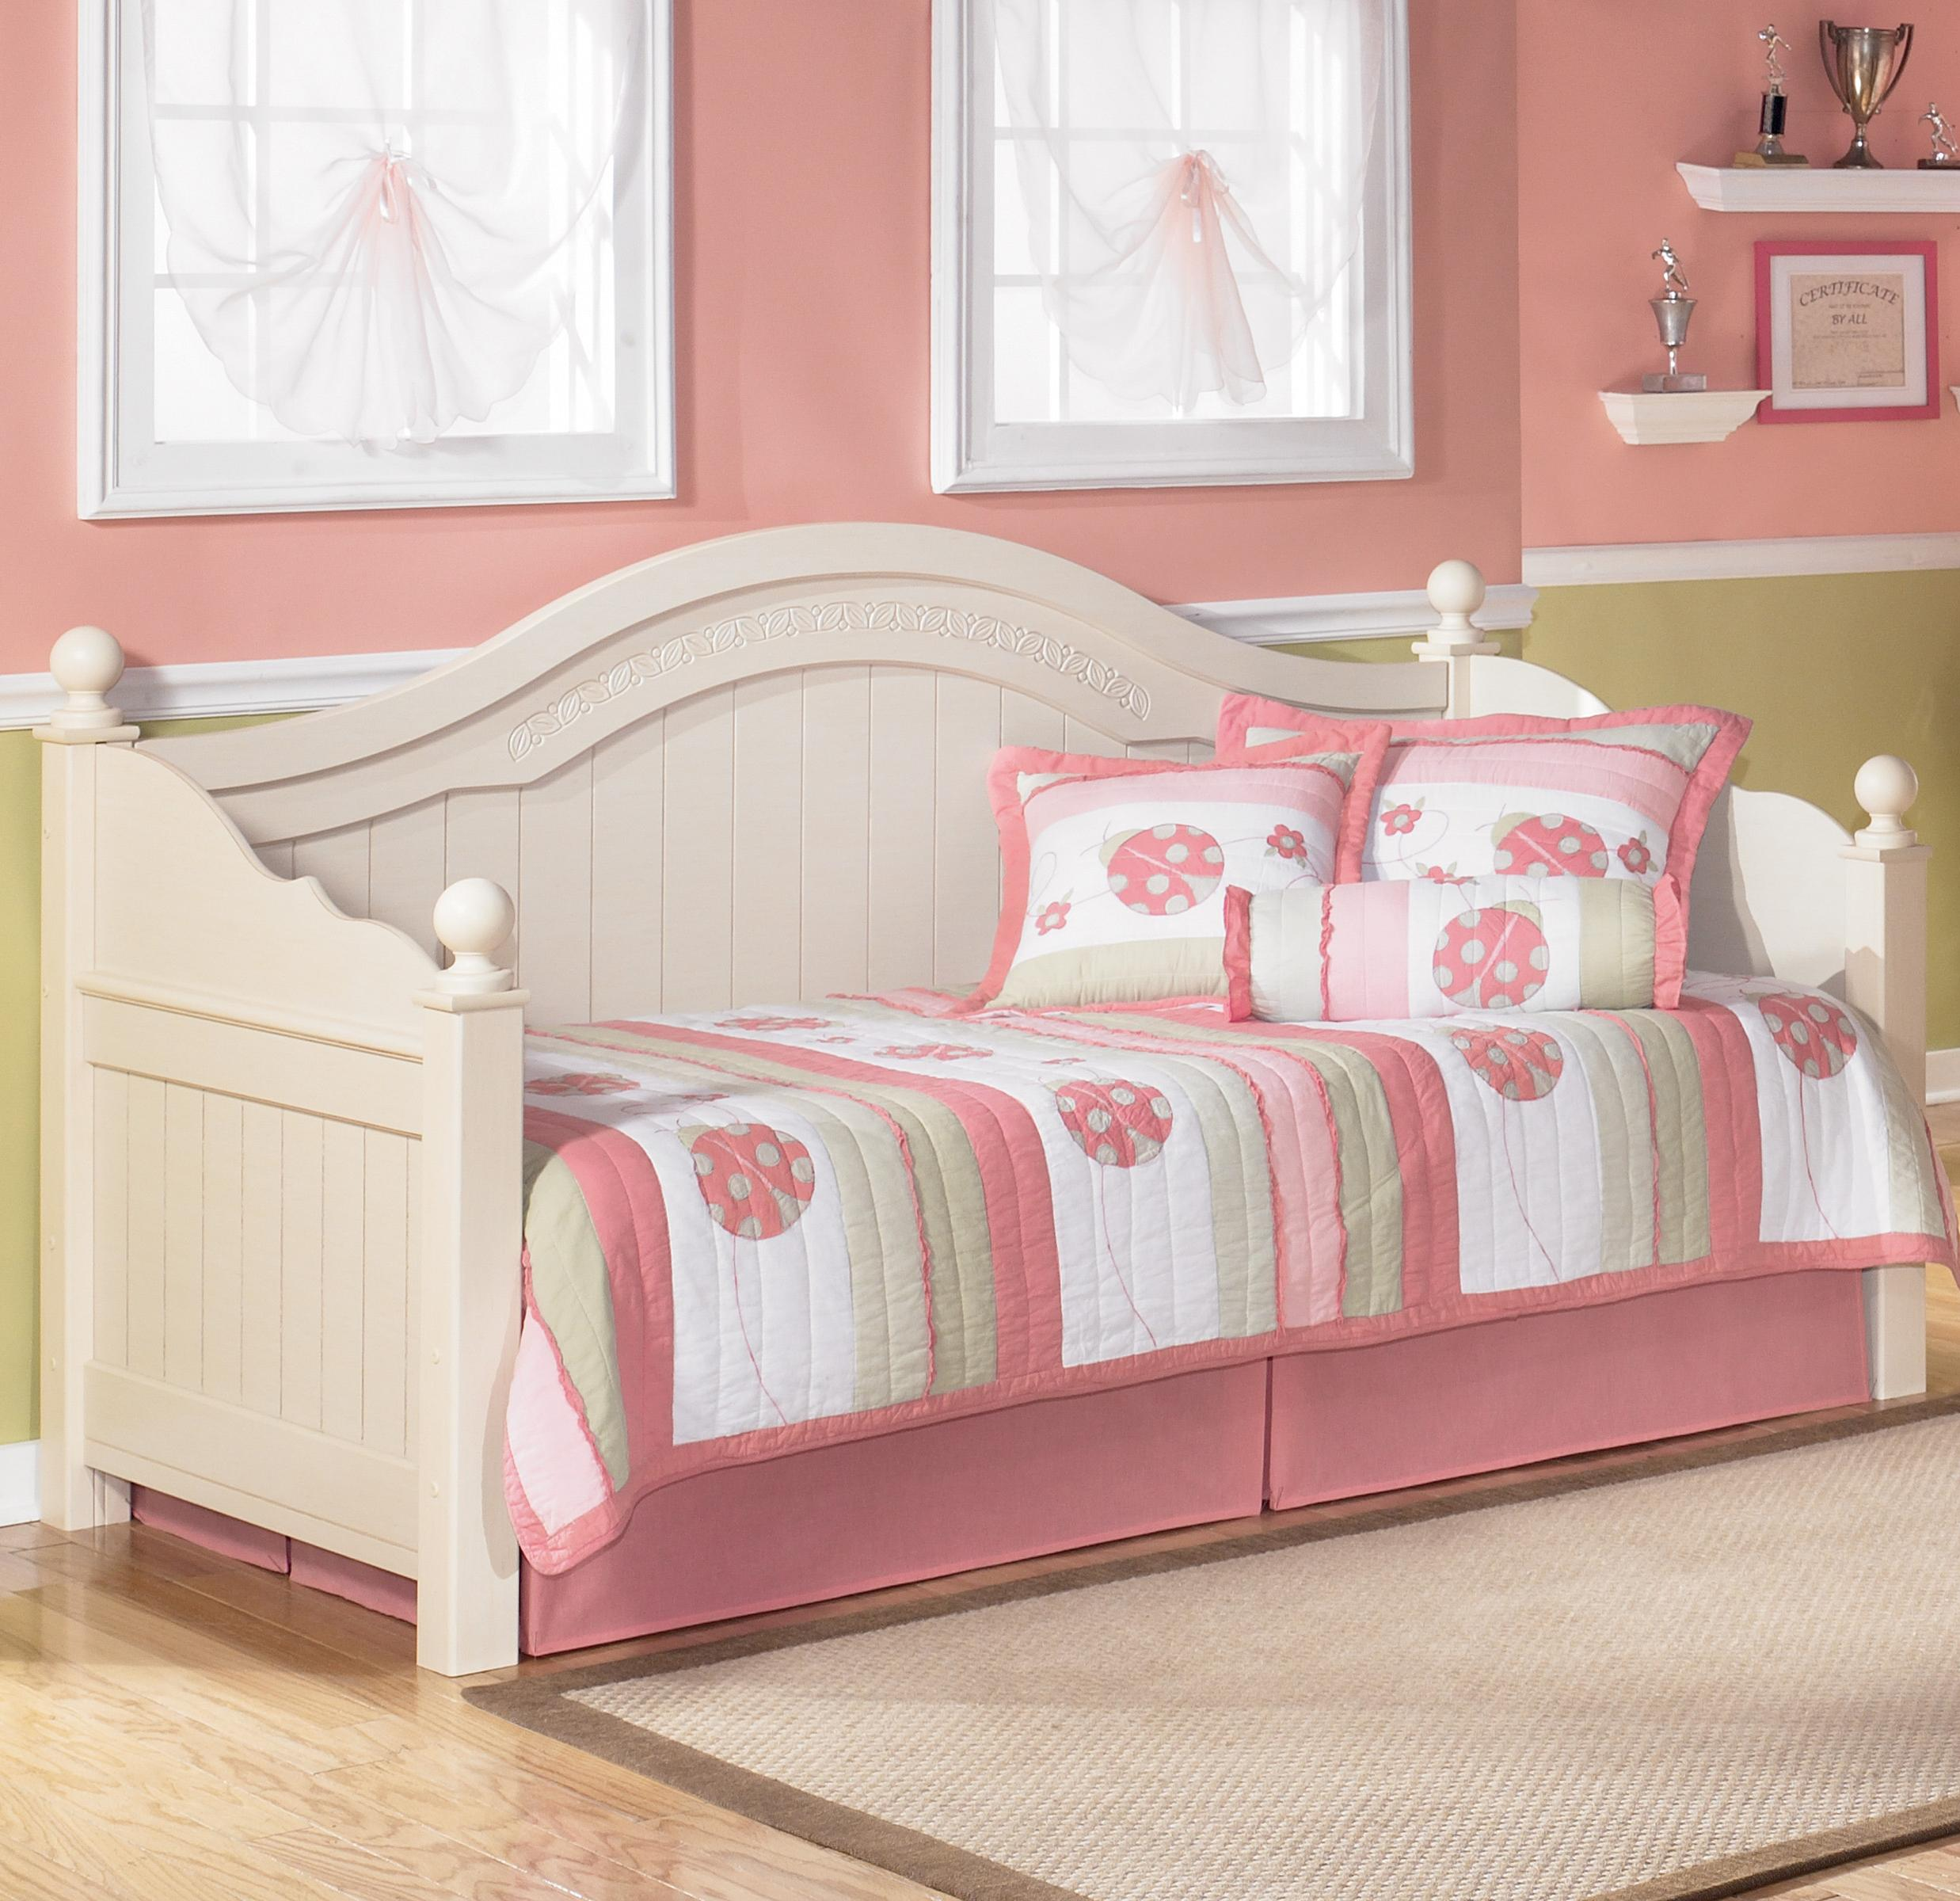 Signature design by ashley cottage retreat day bed household furniture daybed Cottage retreat collection bedroom furniture